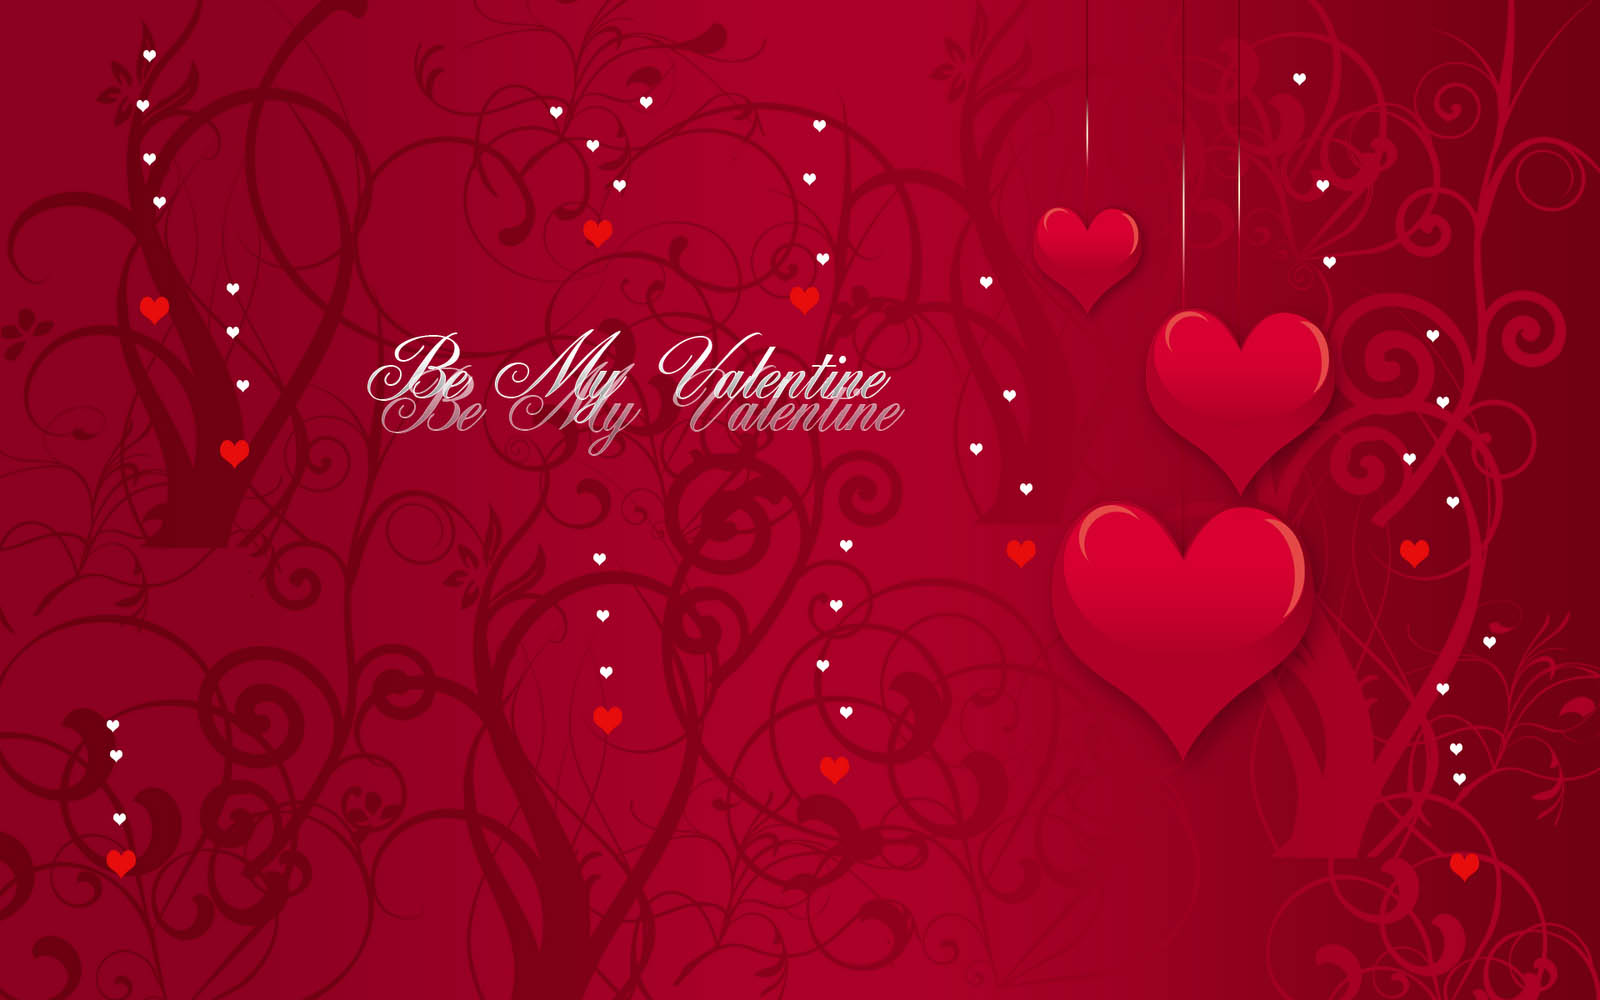 Free Desktop Wallpaper Valentines Day Wallpaper